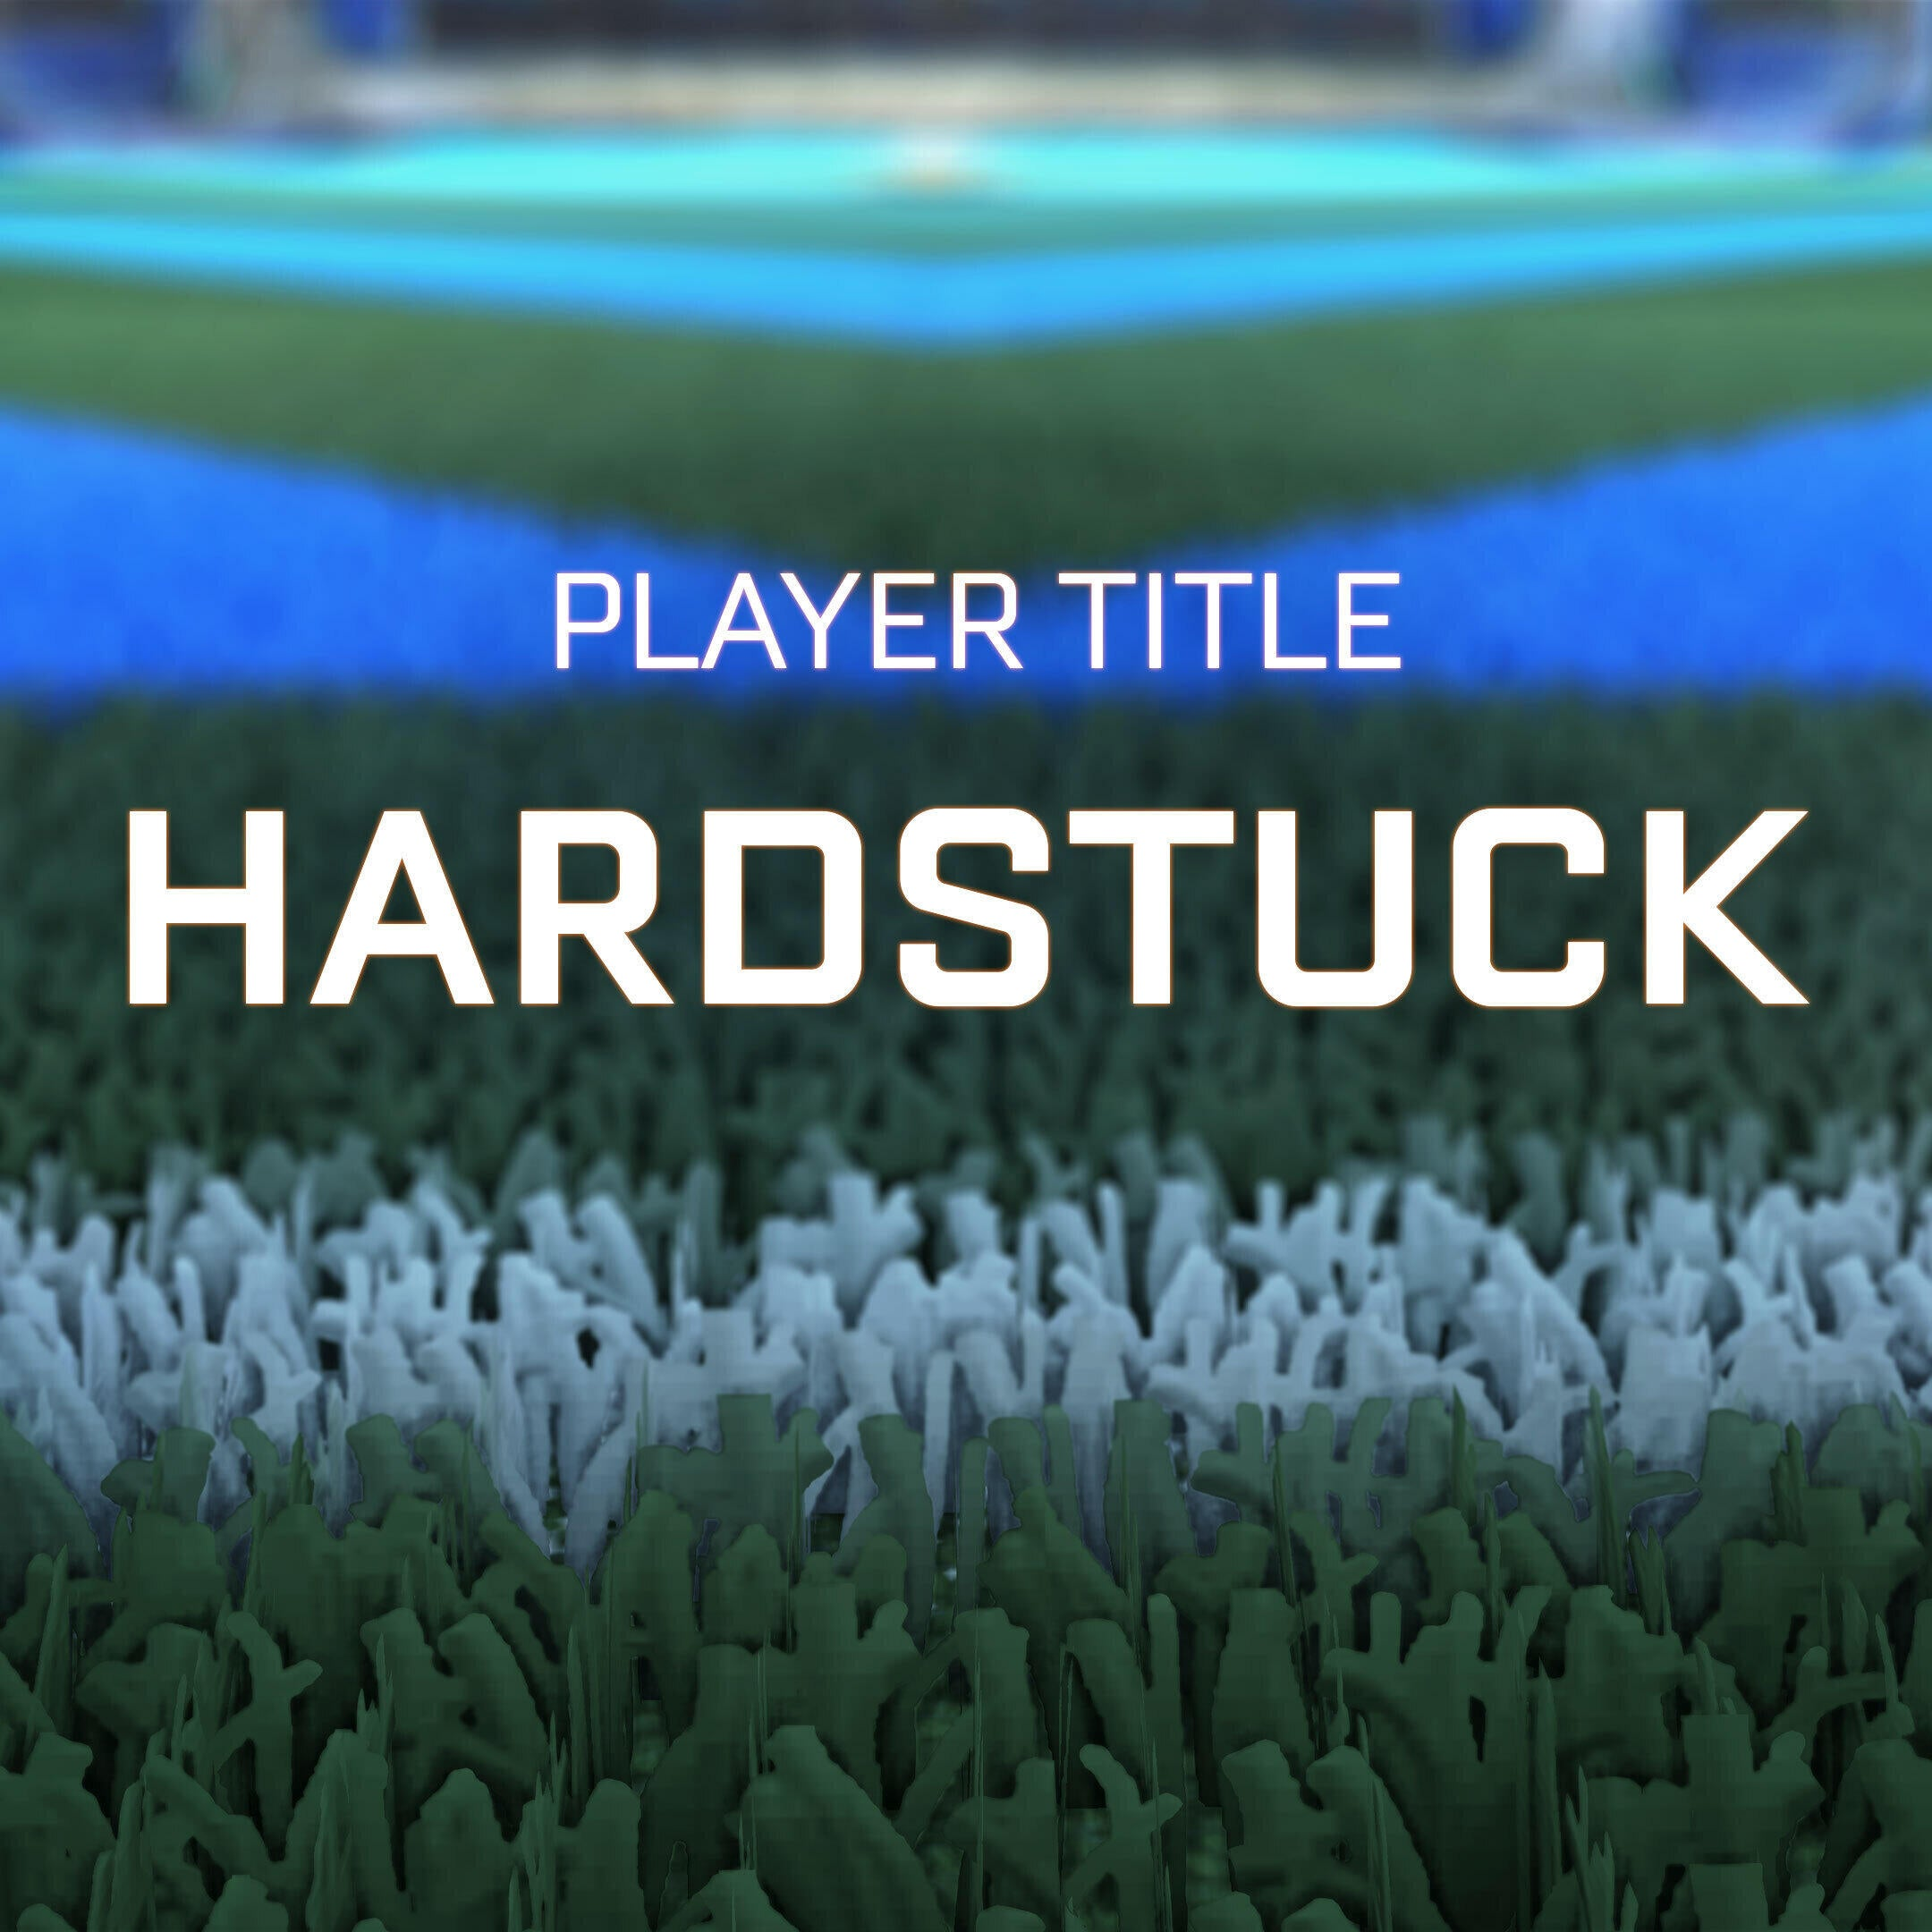 Hardstuck Player Title